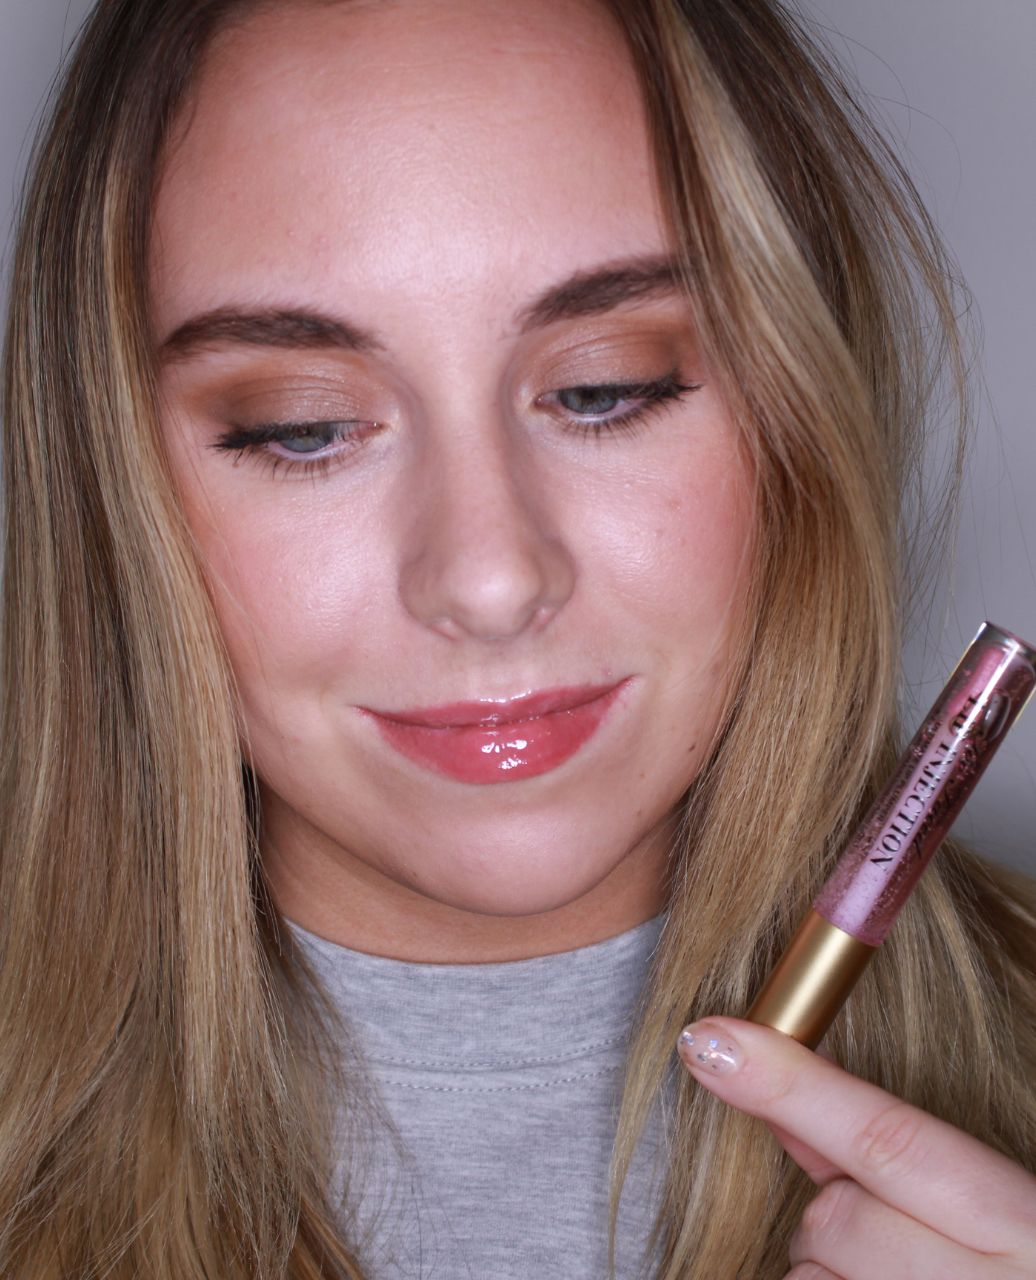 Best lip gloss 2019 - Cosmo Editors try on 9 top-rated formulas